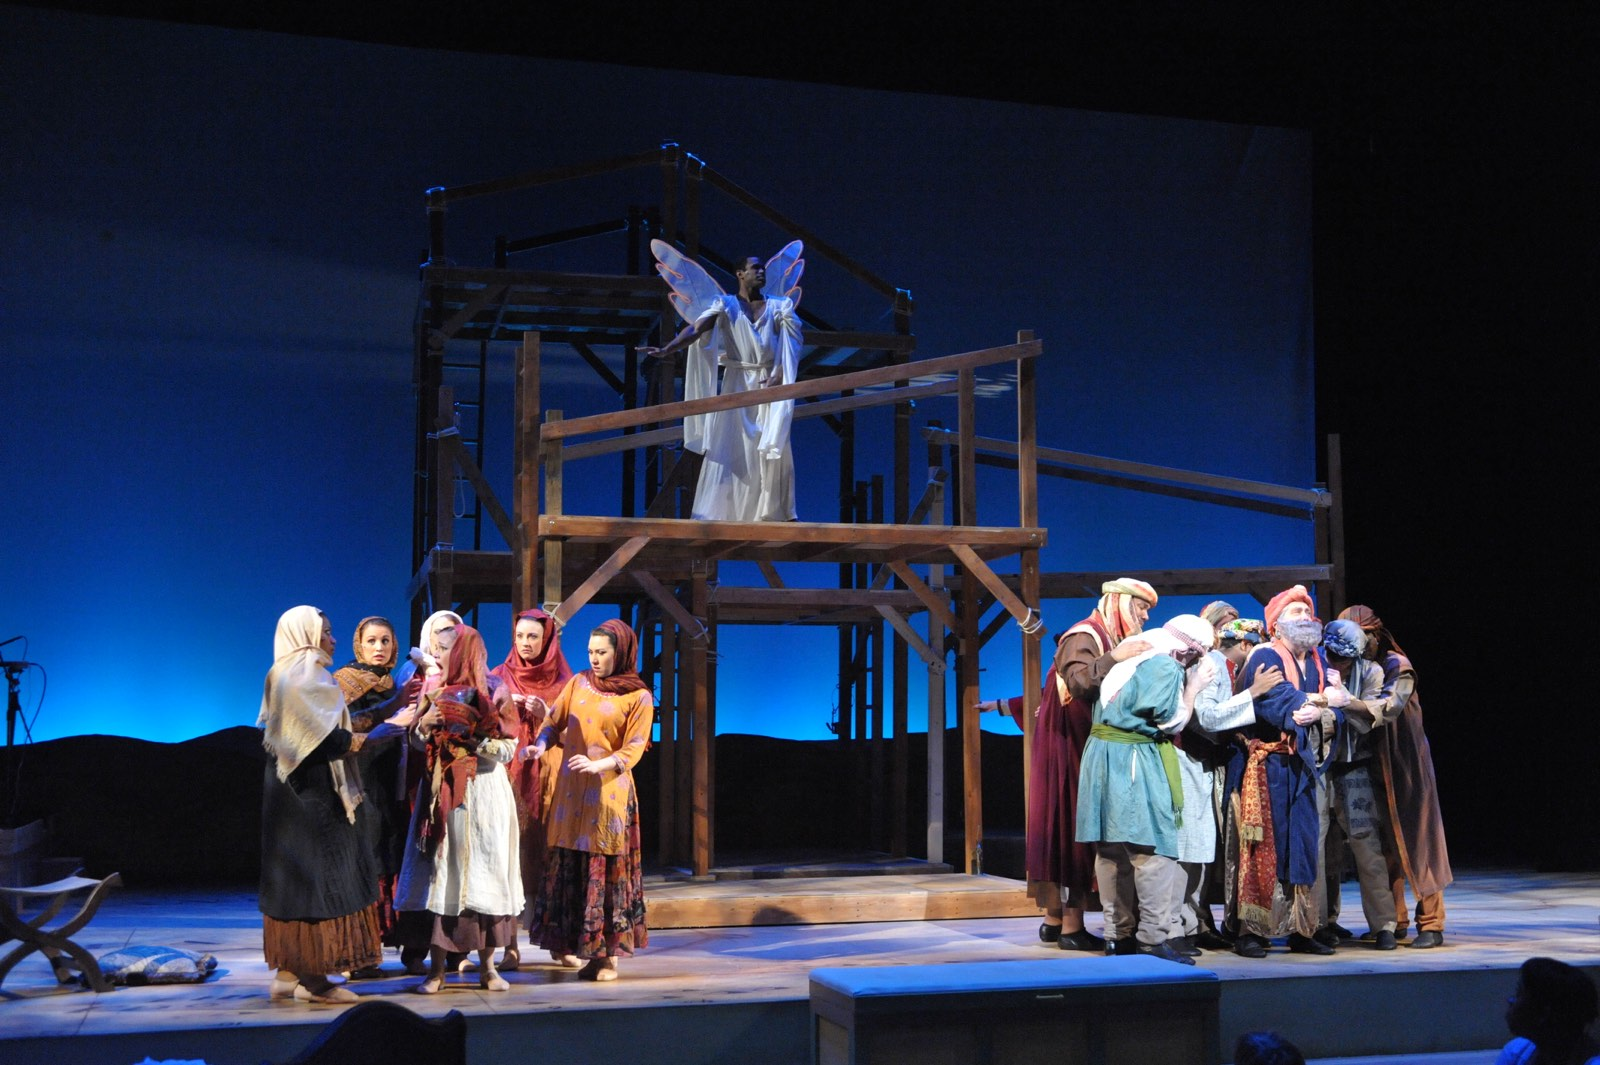 JOSEPH AND THE AMAZING TECHNICOLOR DREAMCOAT - Alan Wiggins as Joseph above the ensemble<br>Set design by Eugenia Furneaux, Lighting by Dan Covey, Costumes by Ivania Stack - photo by Stan Barouh